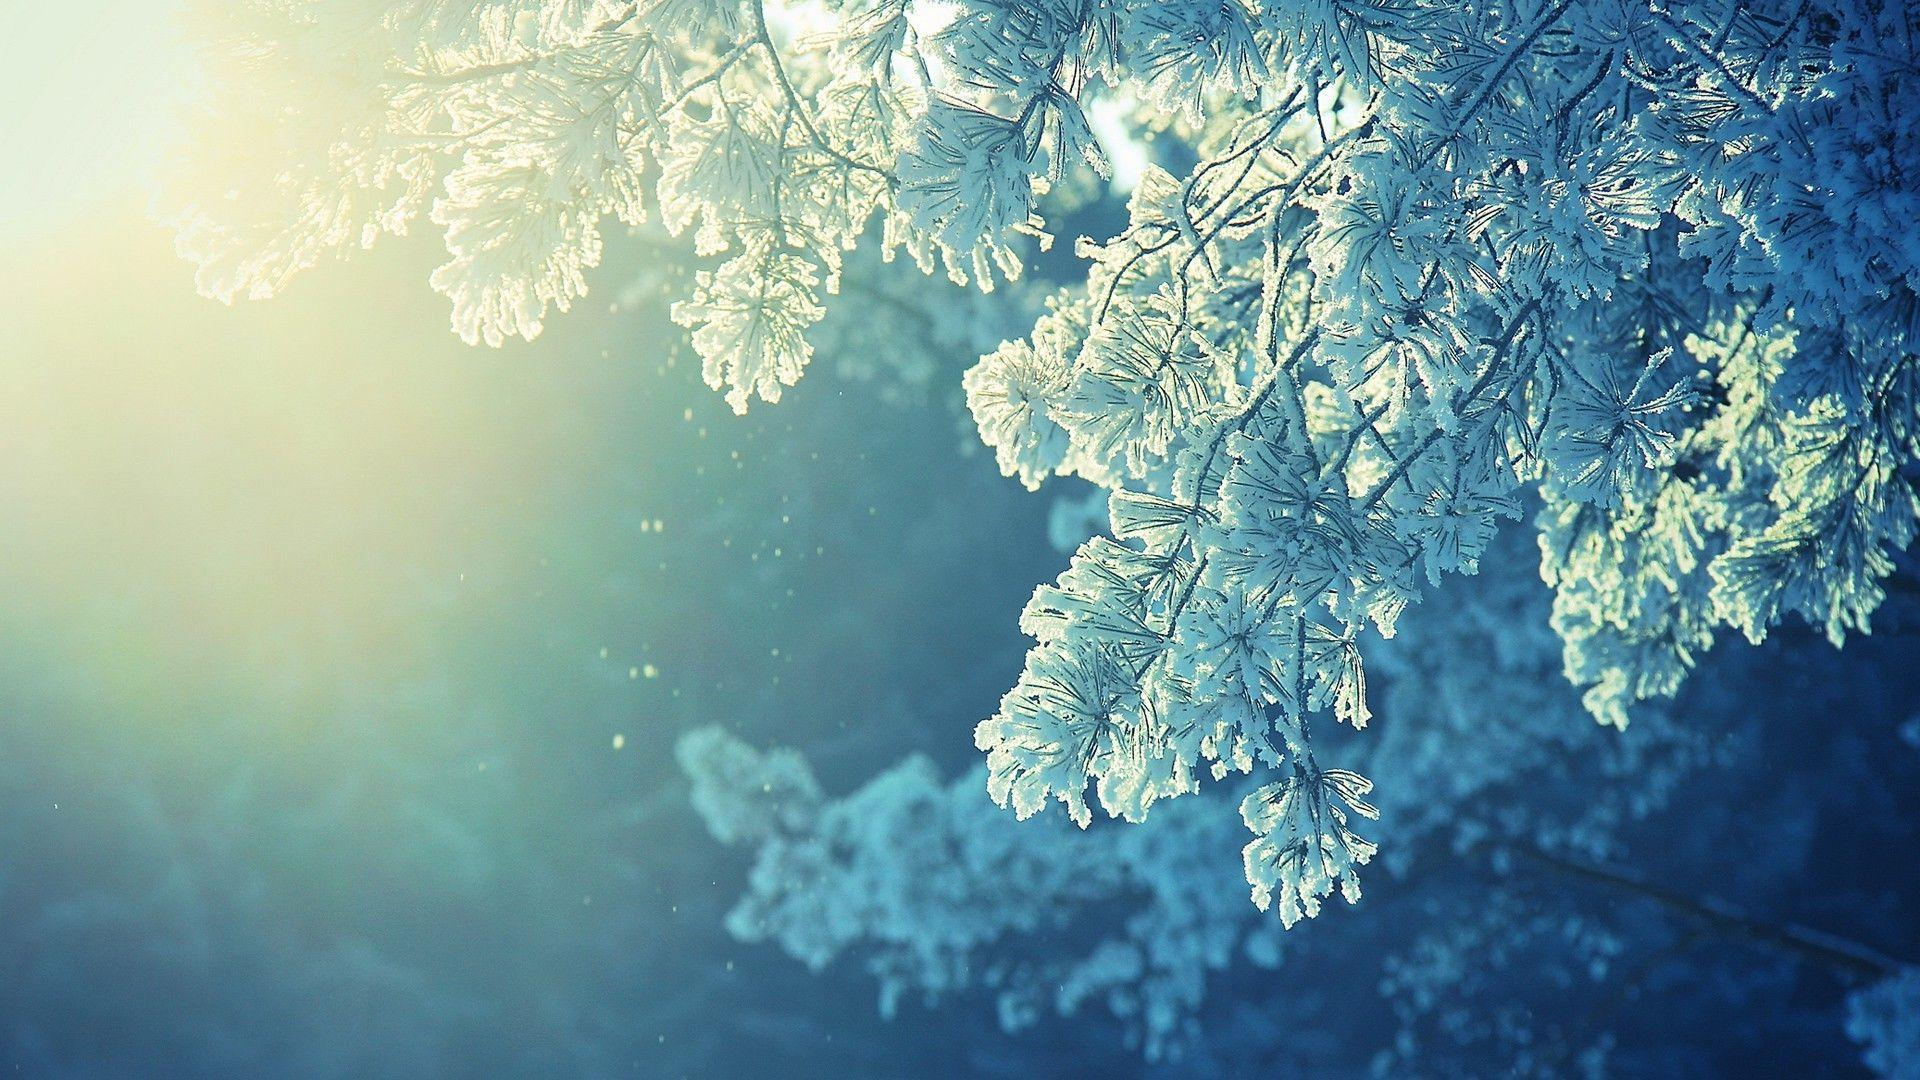 anime, Nature, Snow, Winter, Cold, Sunlight, Peaceful Wallpapers HD